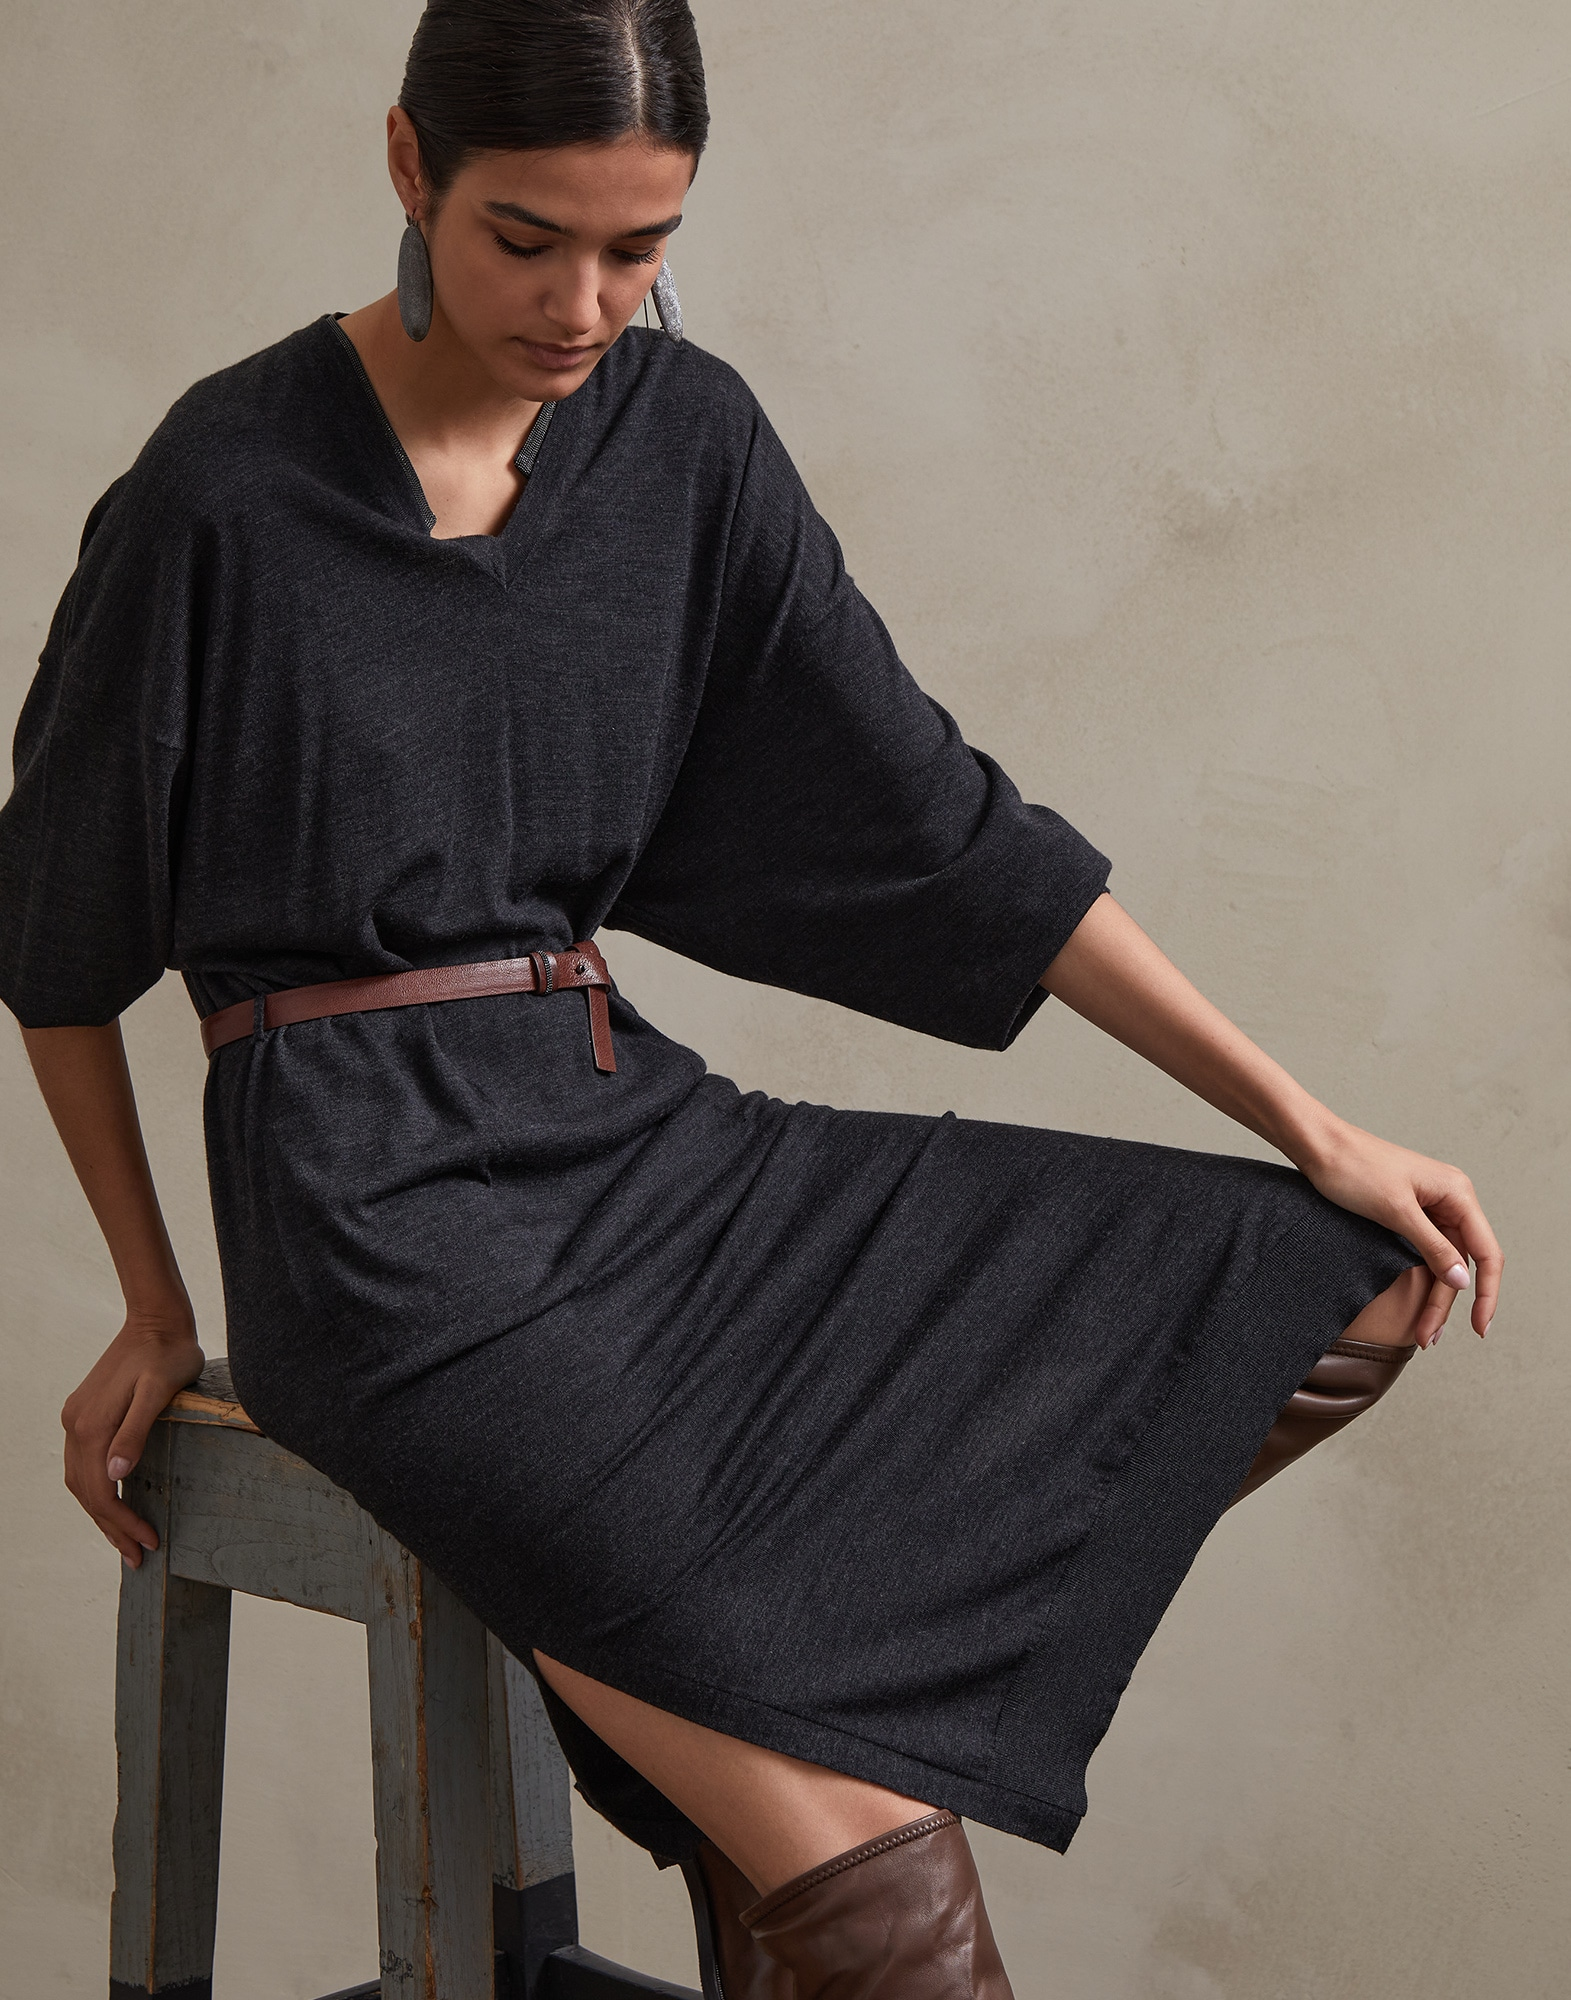 Dress Anthracite Woman 0 - Brunello Cucinelli